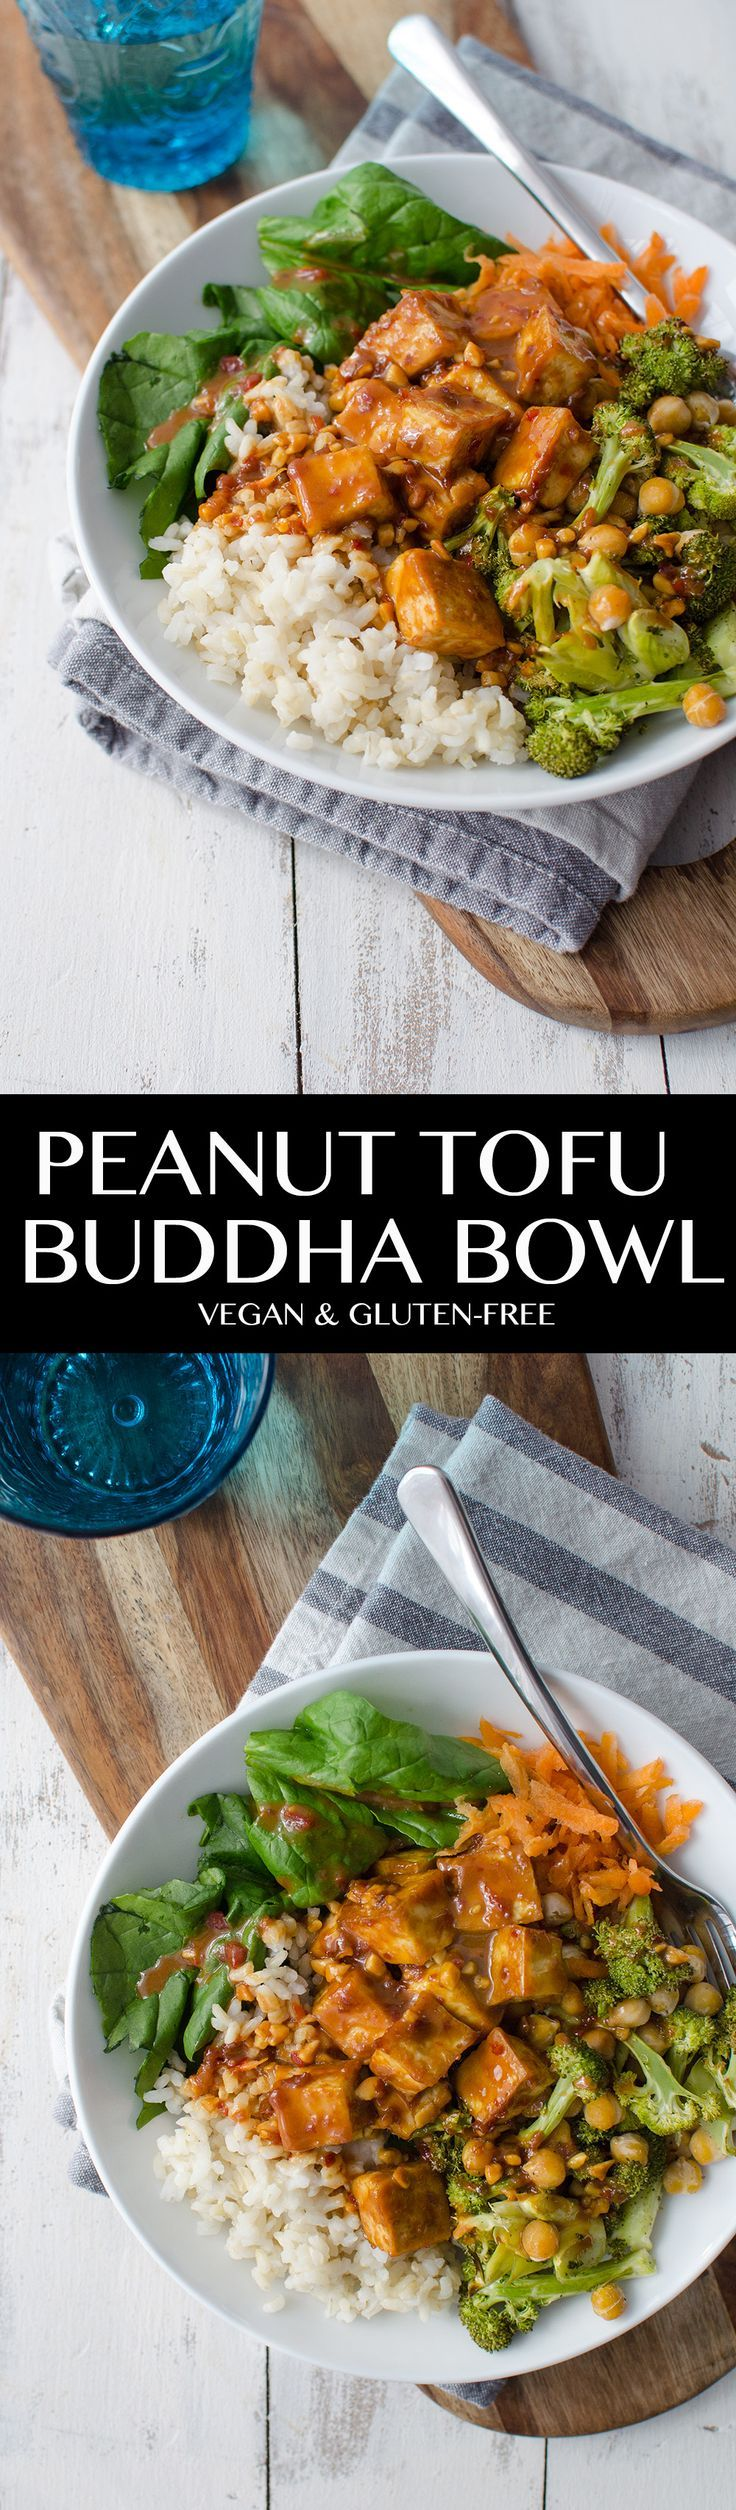 Peanut Tofu Buddha Bowl! A healthy lunch or dinner, perfect for the New Year! Brown rice, the BEST tofu, vegetables, roasted broccoli in a simple peanut sauce. Vegan and Gluten-Free. | http://www.deli